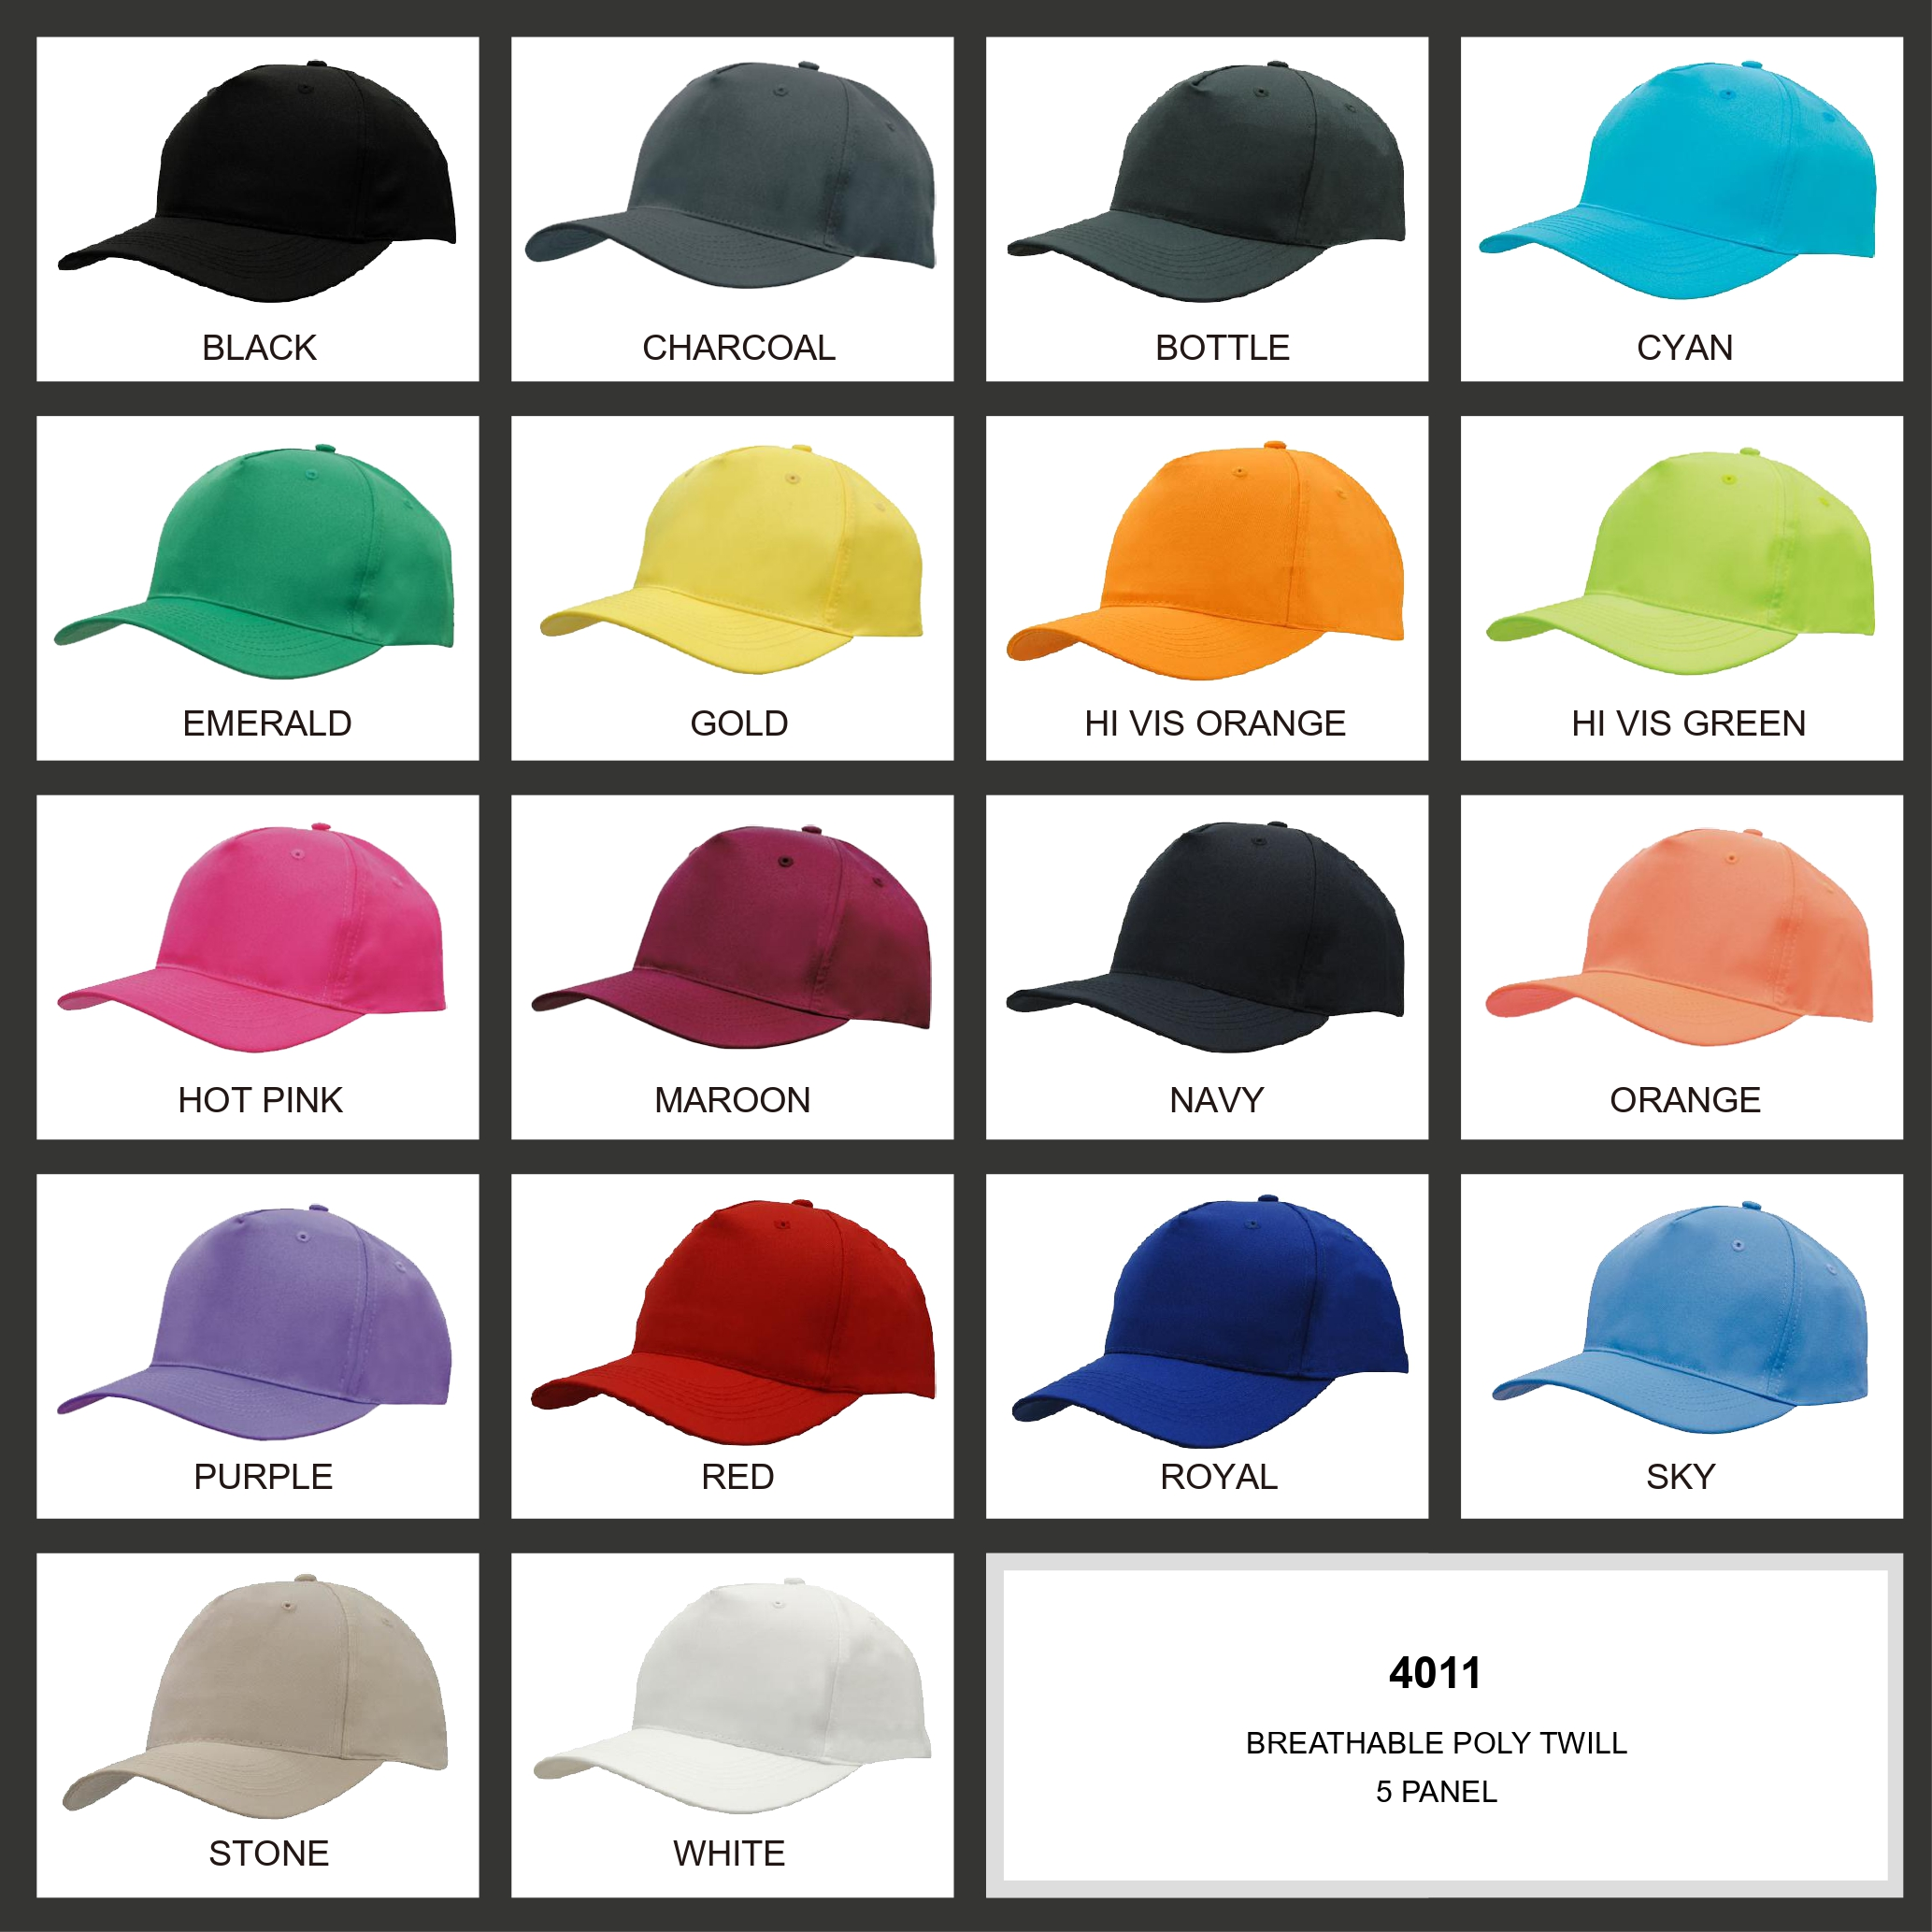 Breathable Poly Twill Cap (4011) 2 | | Promotion Wear